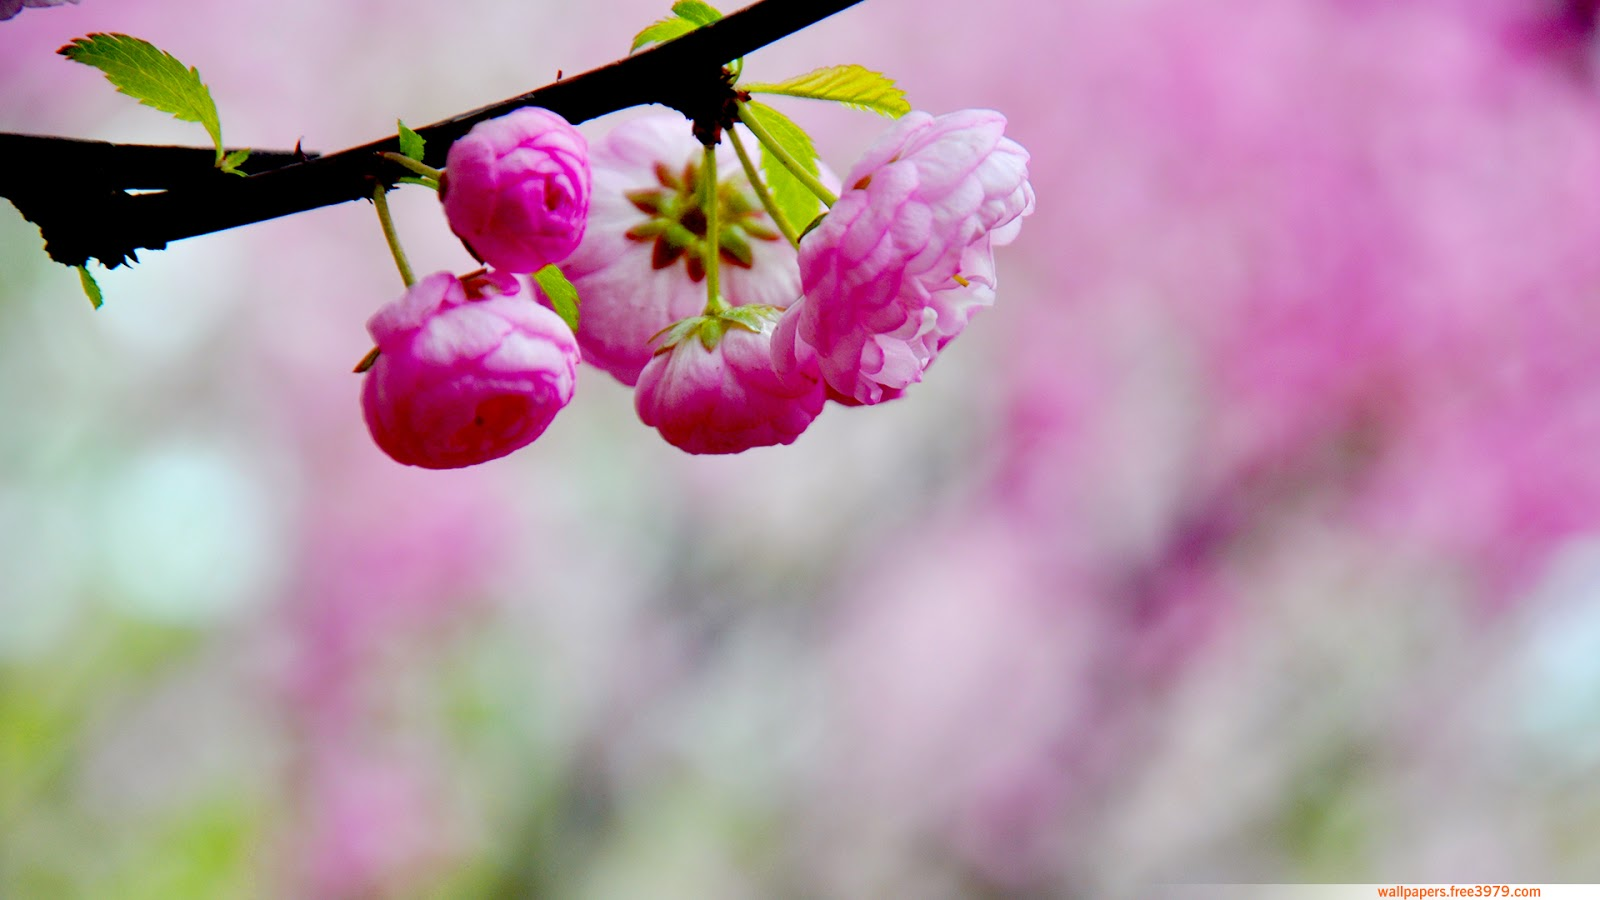 peach blossoms wallpaper - photo #25